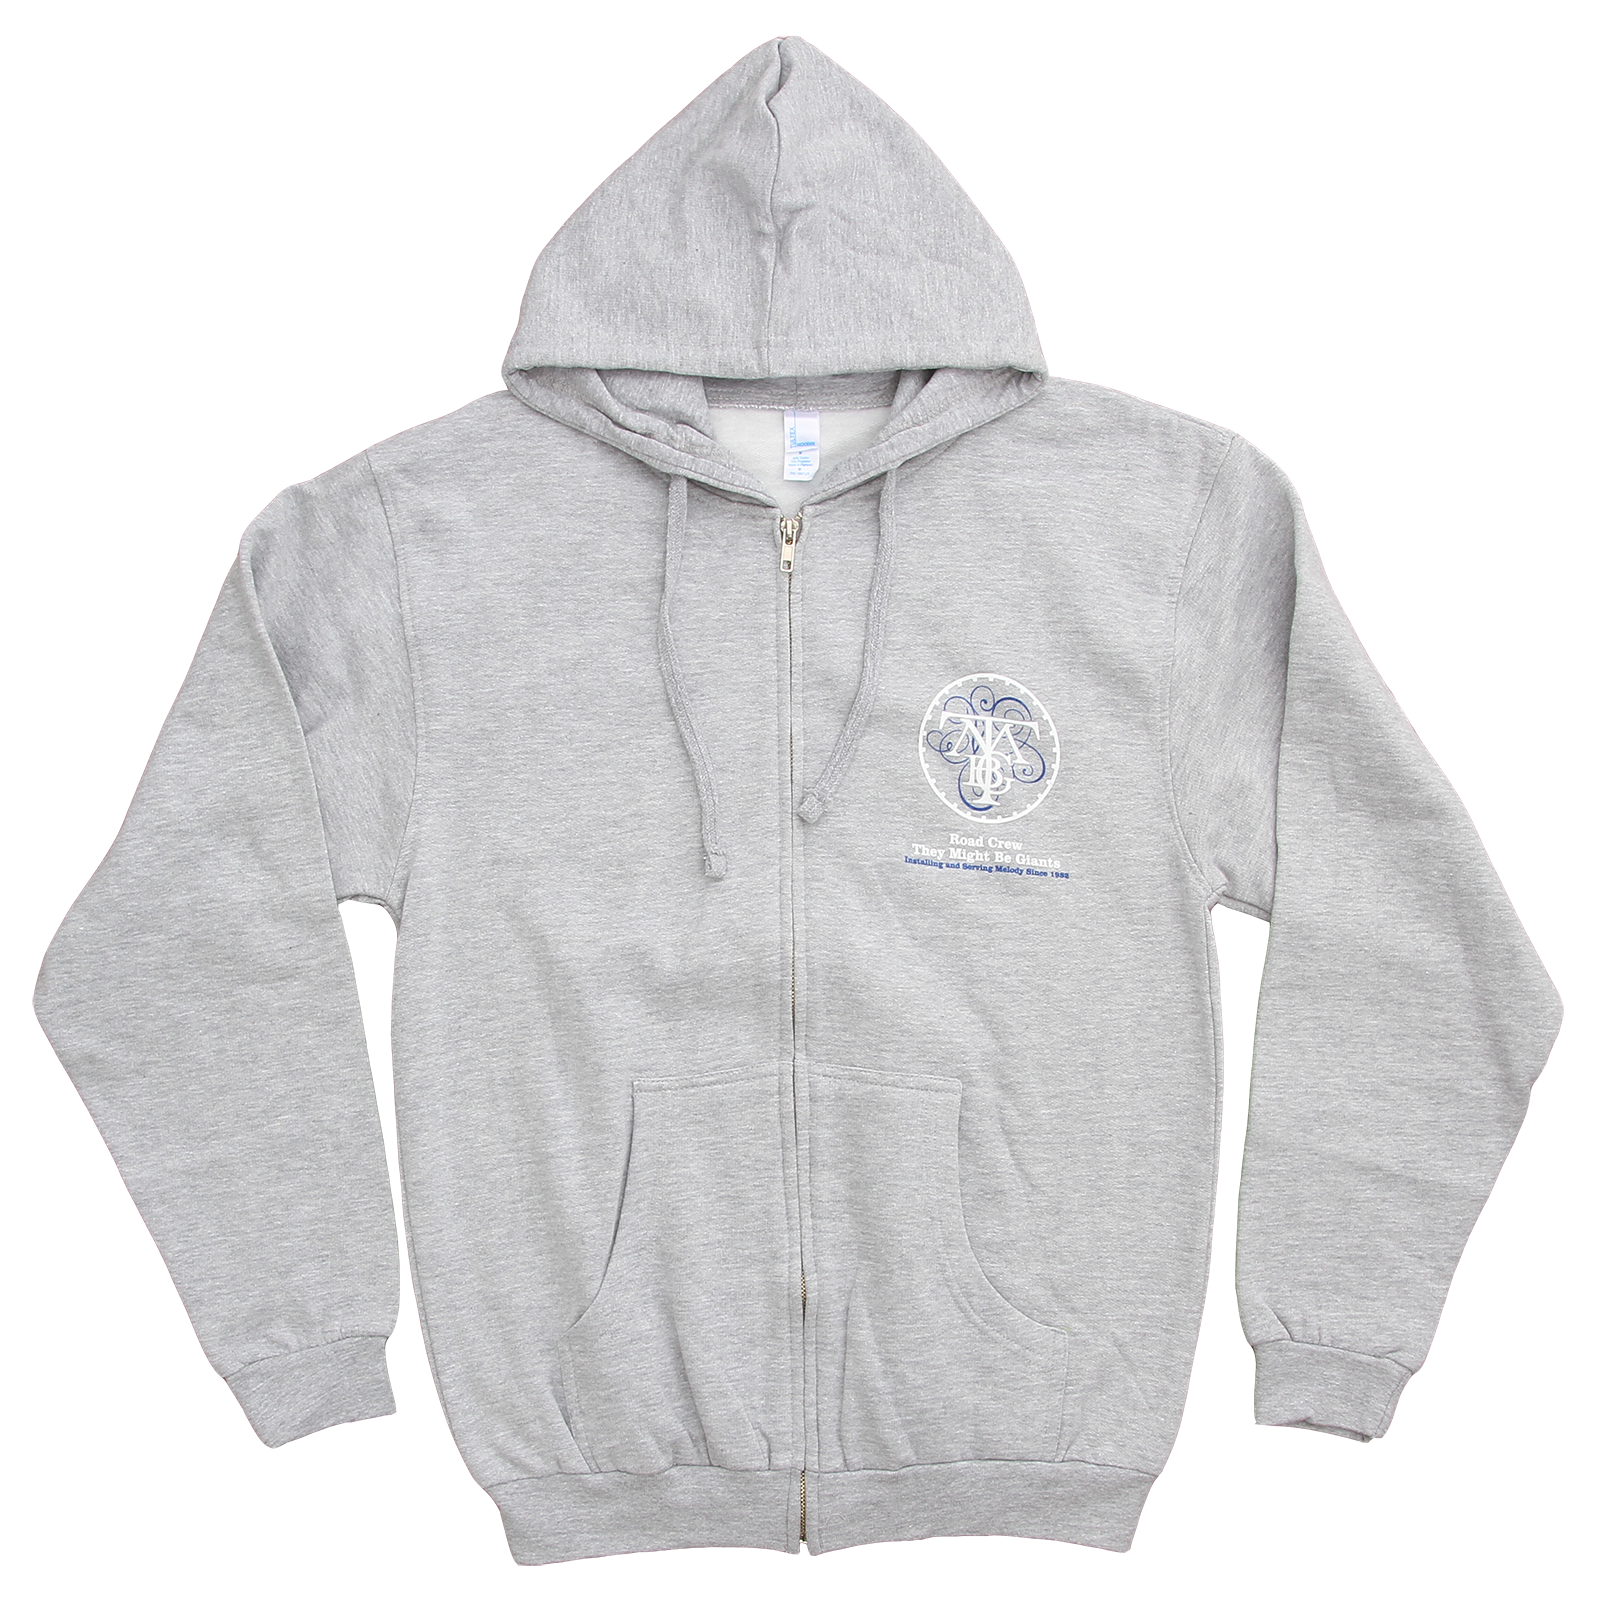 8086ed14 They Might Be Giants - Ape on Grey Zip Up Sweatshirt